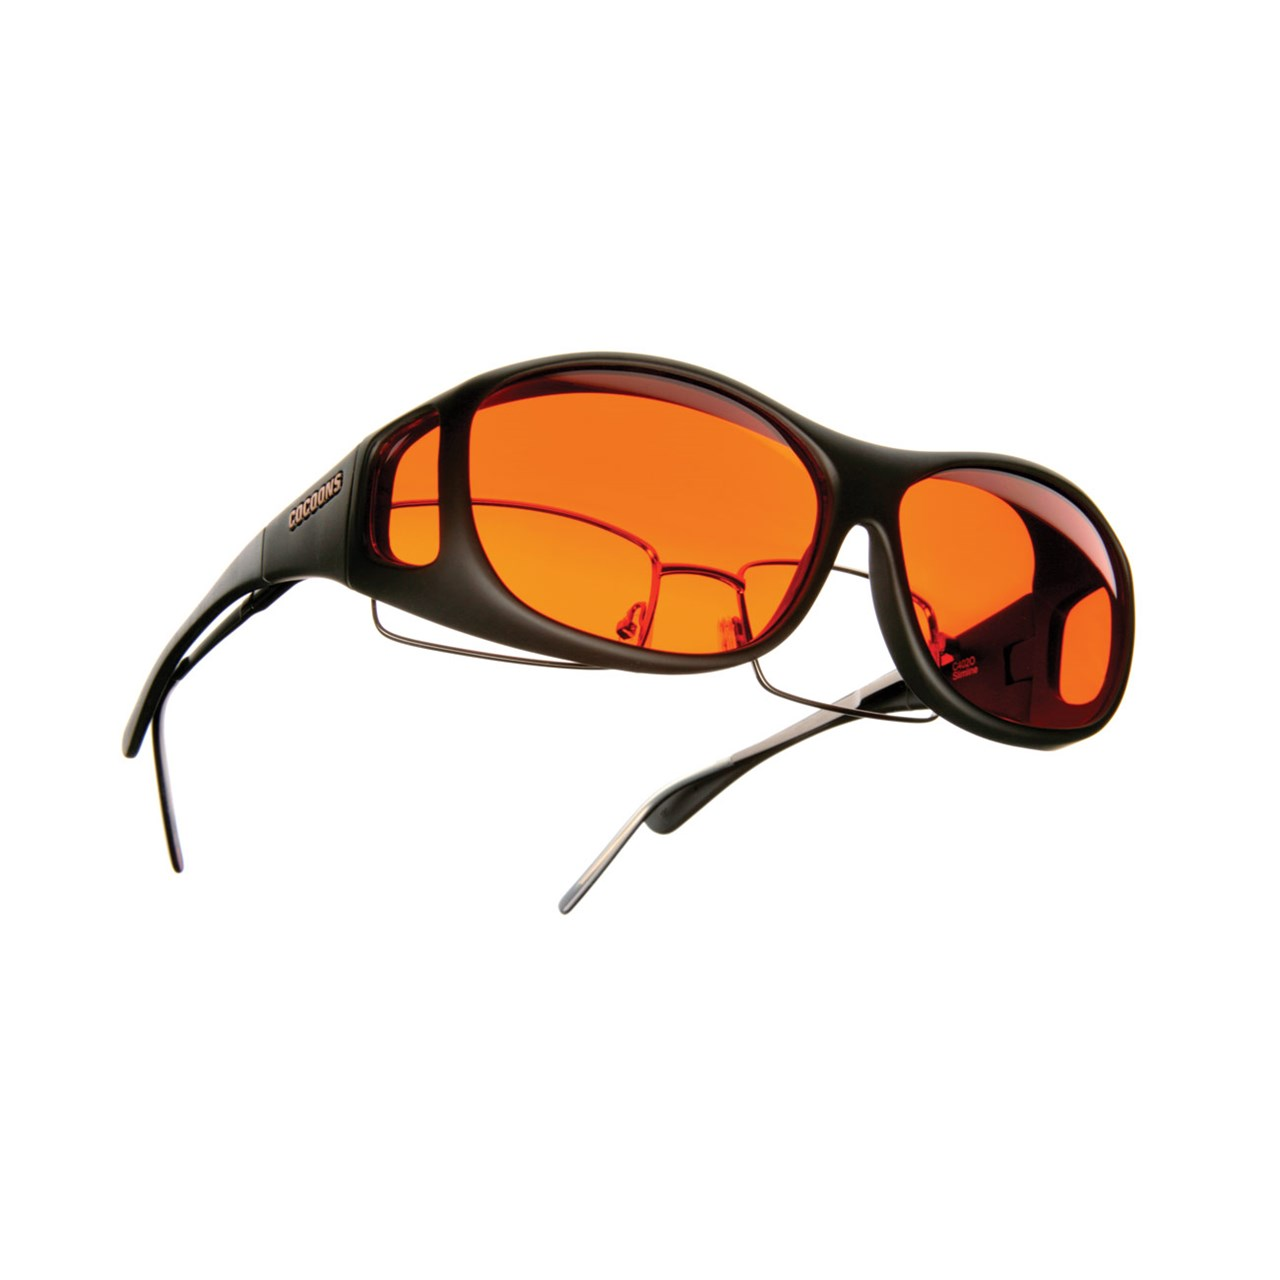 4b18feb332 Cocoons Low Vision Slim Line M Sunglasses-Black-Orange ...